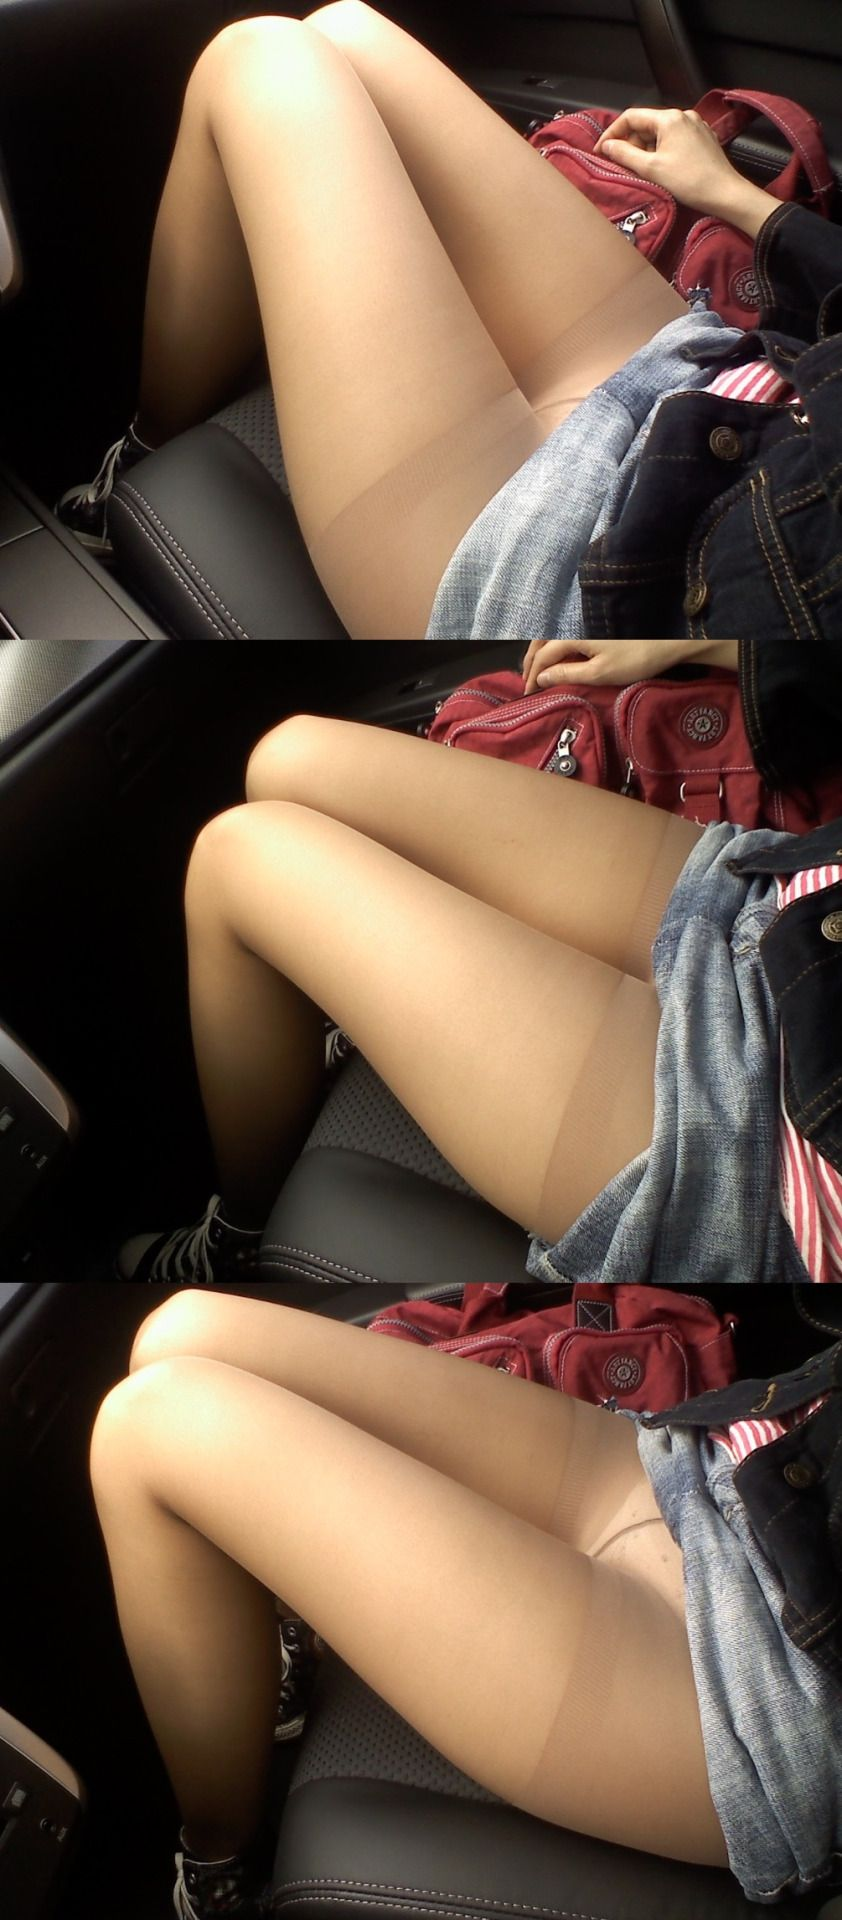 Pantyhose upskirt picture boards